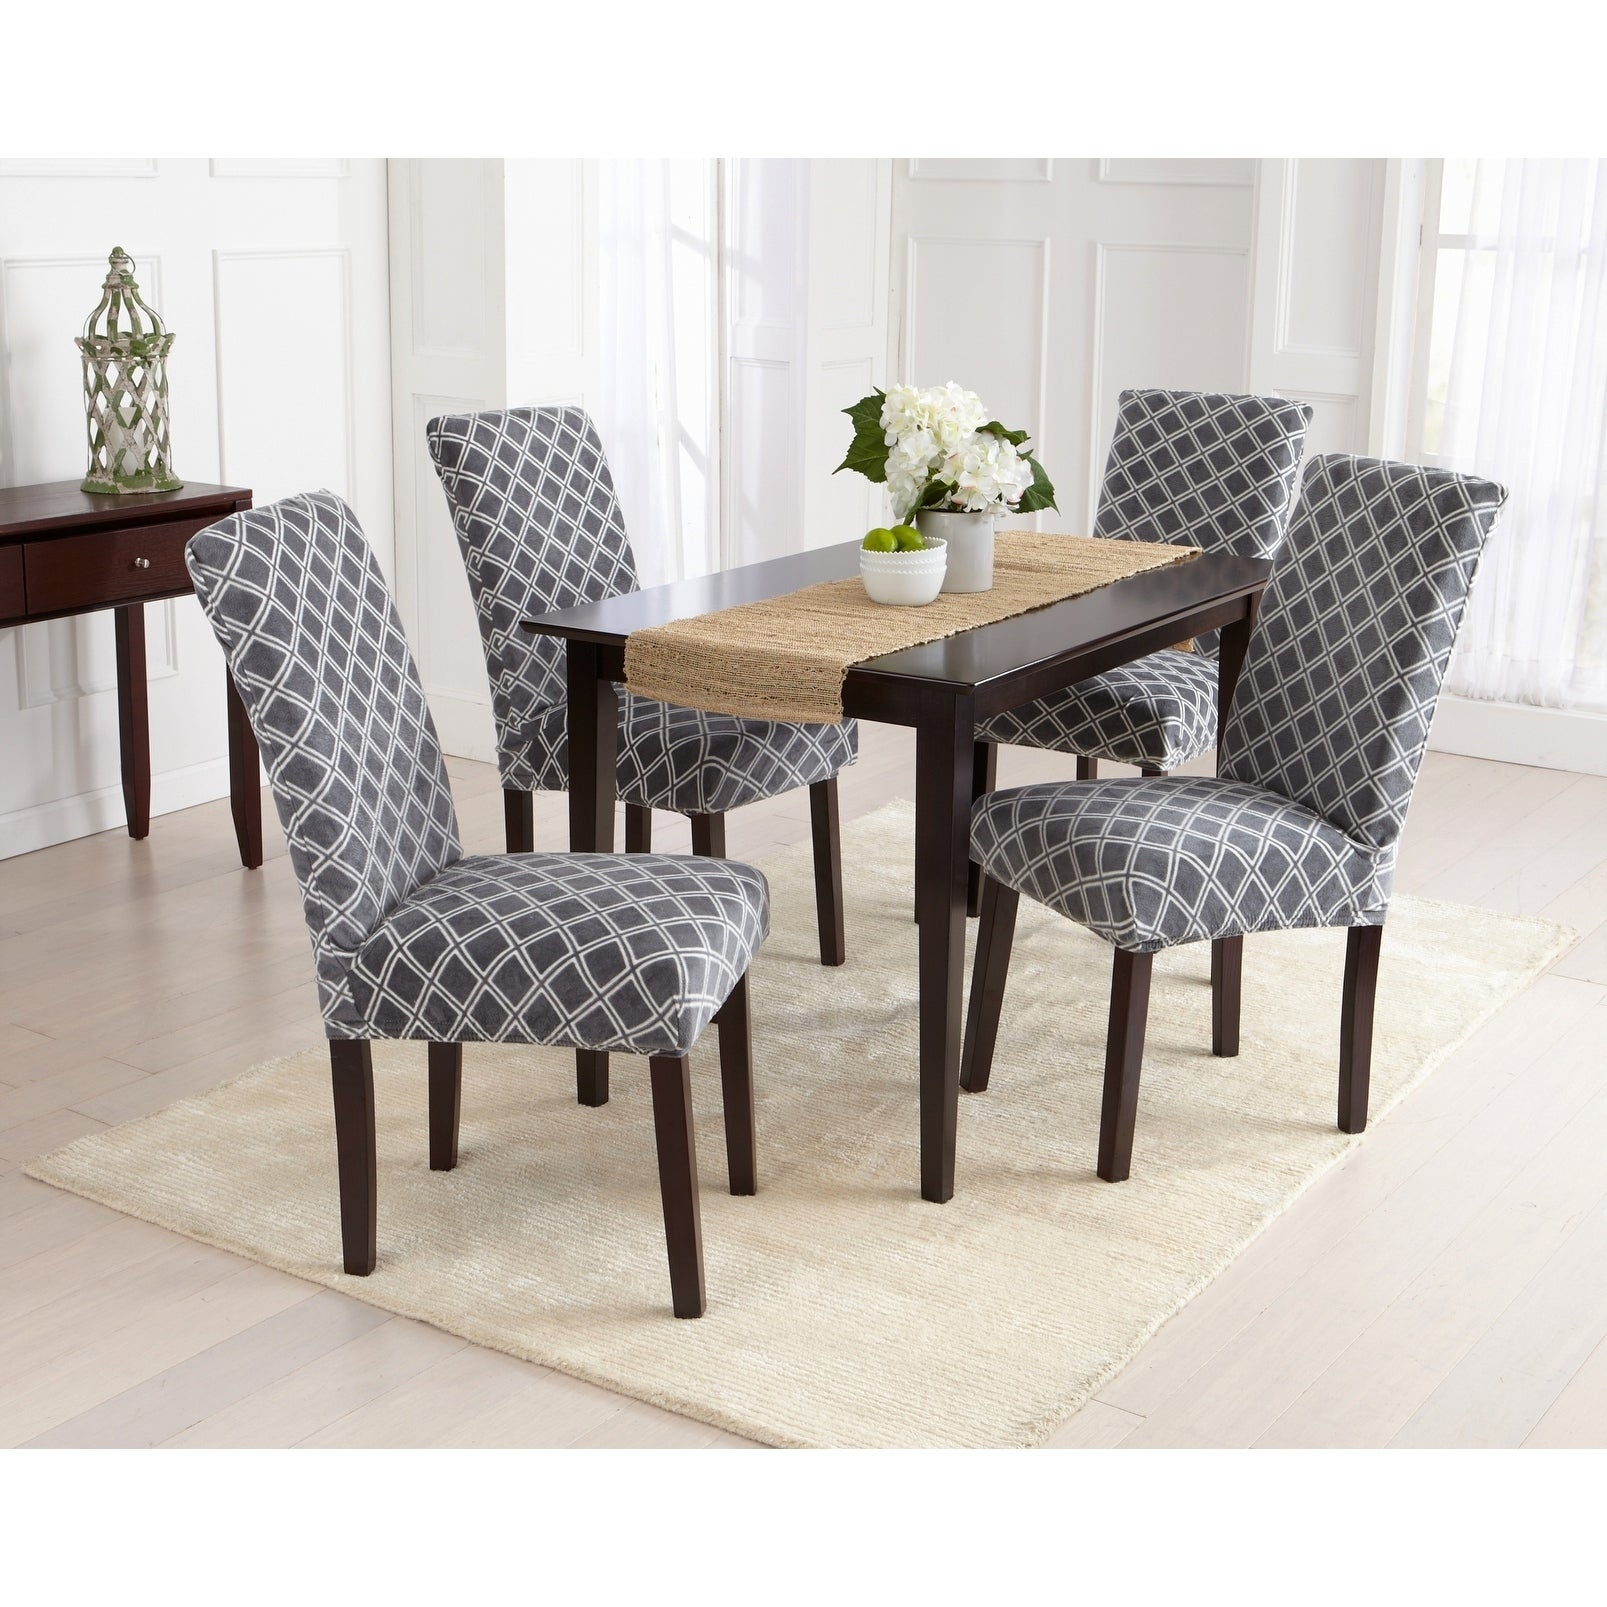 Ideas About Dining Room Table And Chair Covers Eaoey